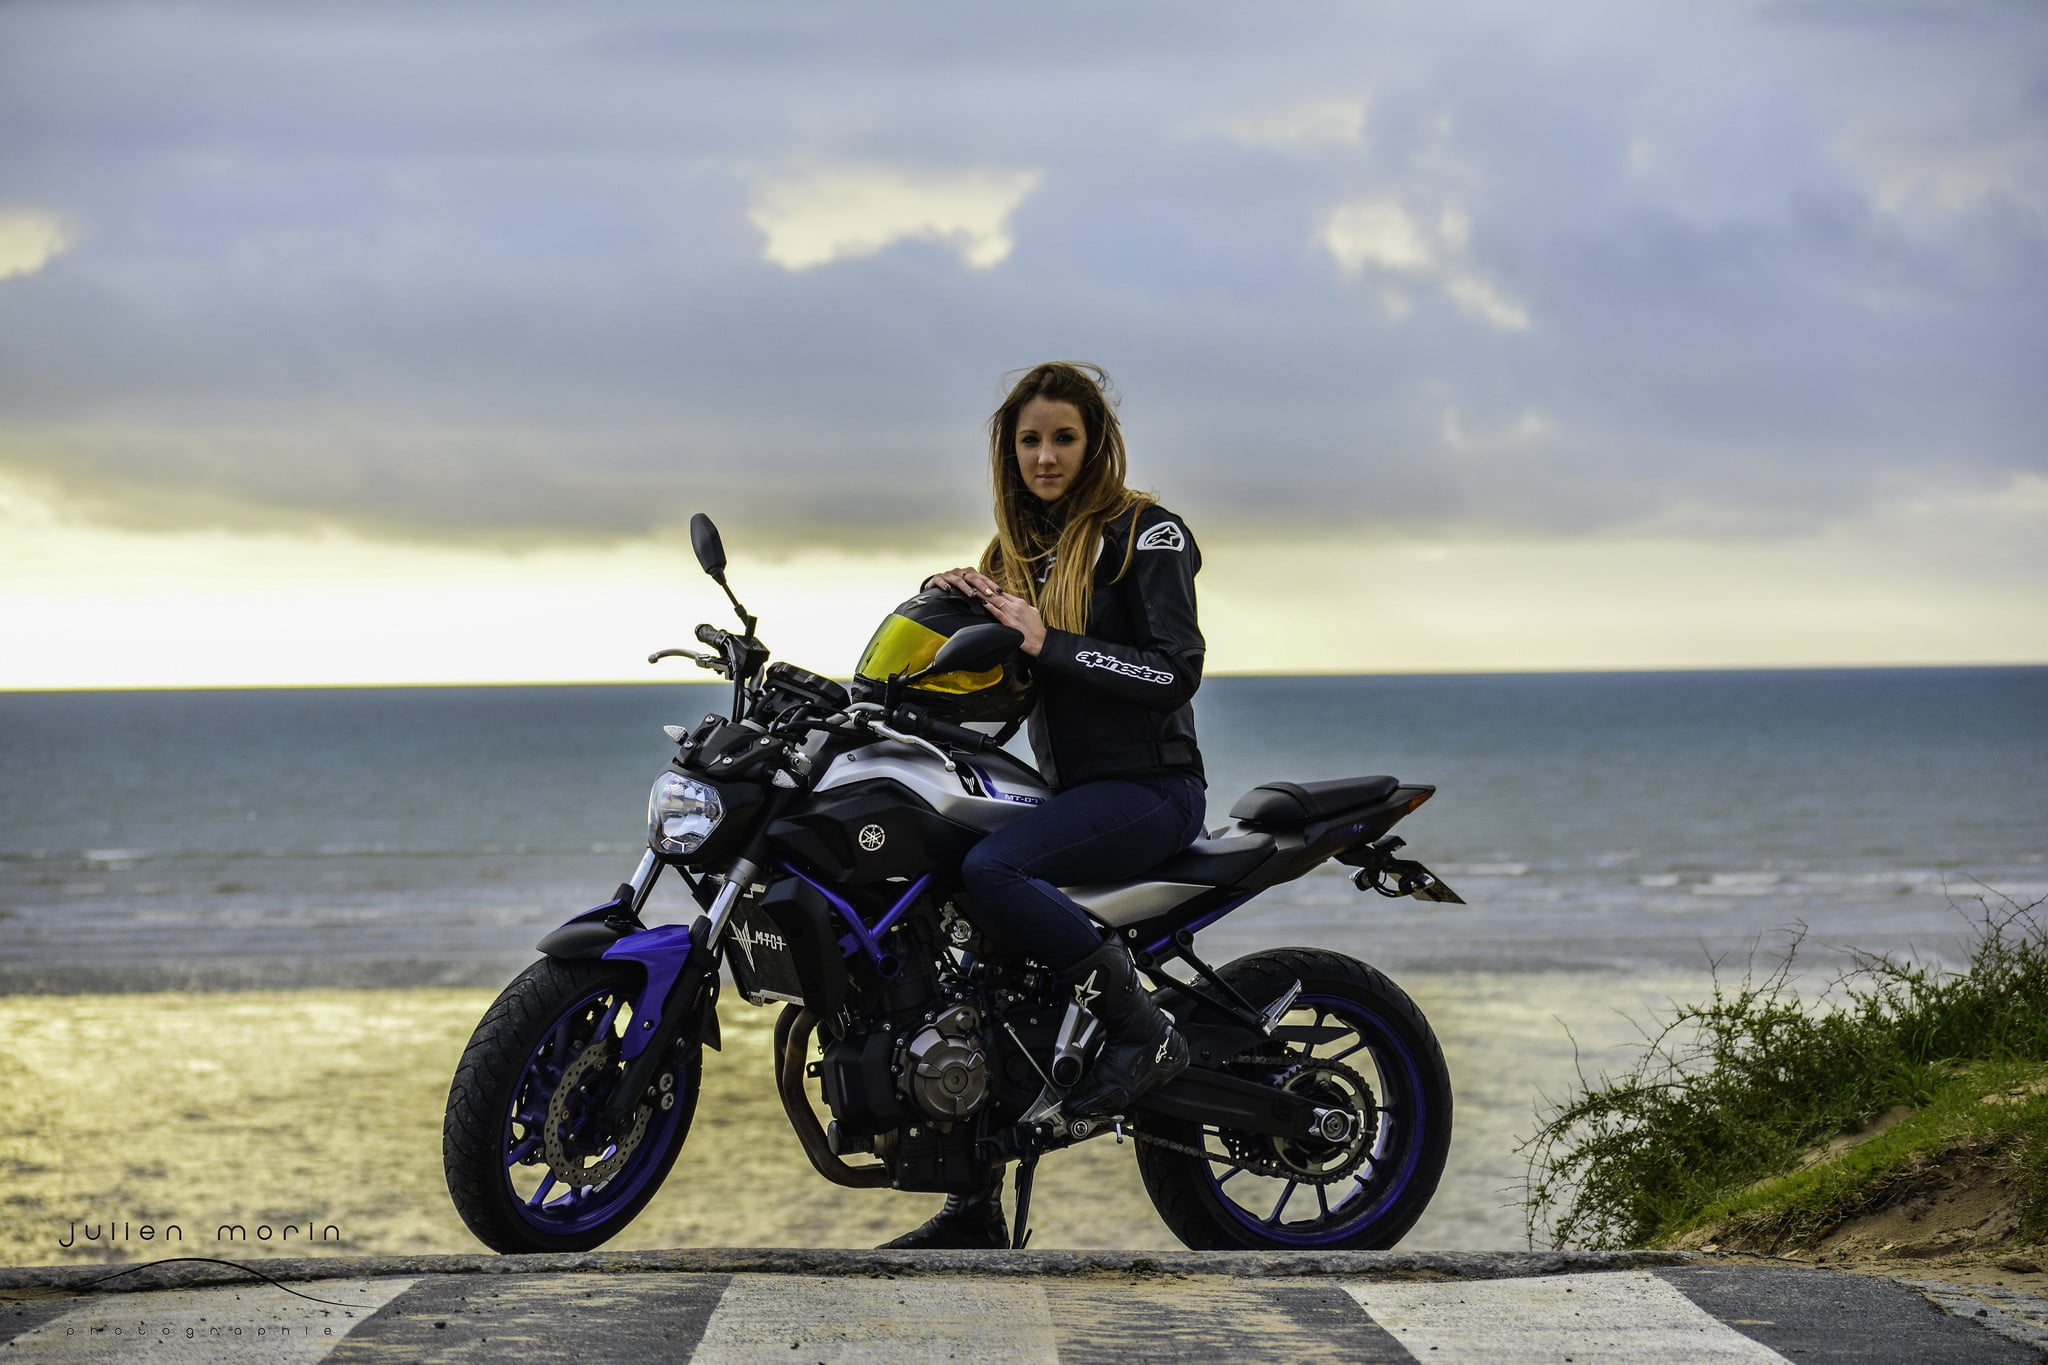 Girl On Bike Hd Wallpaper 20 Yamaha Mt 07 Wallpapers Hd Self Collection